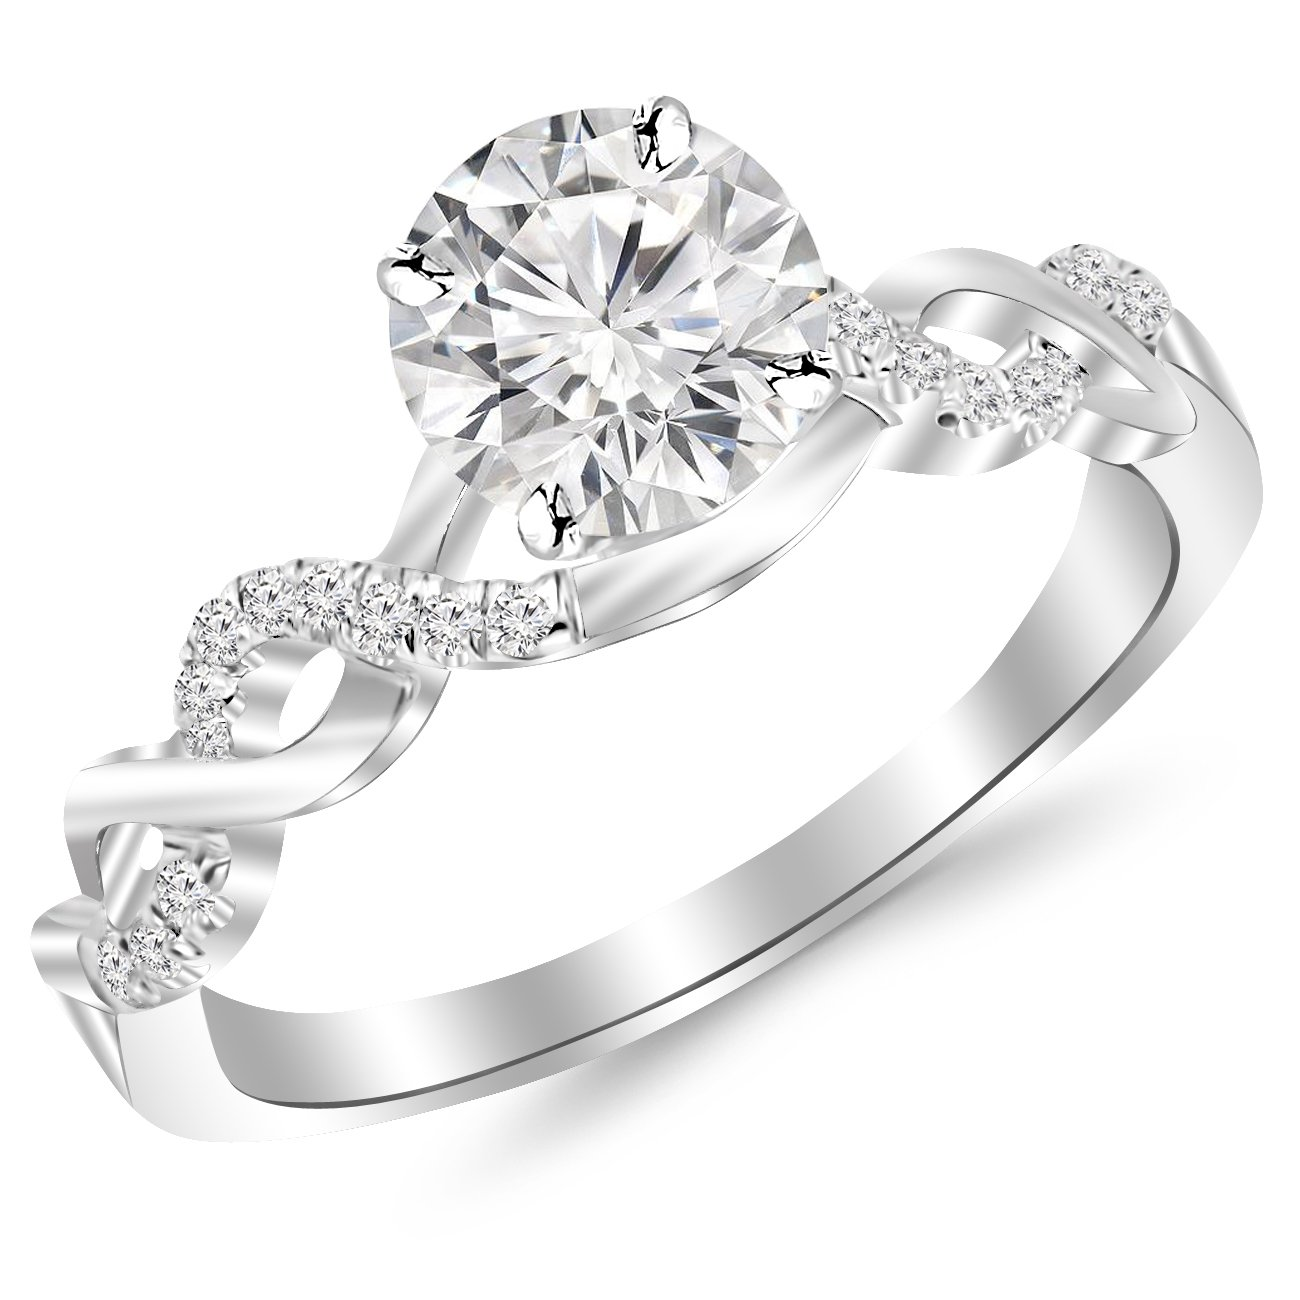 2 Carat Classic Prong Set Diamond Engagement Ring 14K White Gold with a 1.5 Carat J-K I2 Center by Houston Diamond District